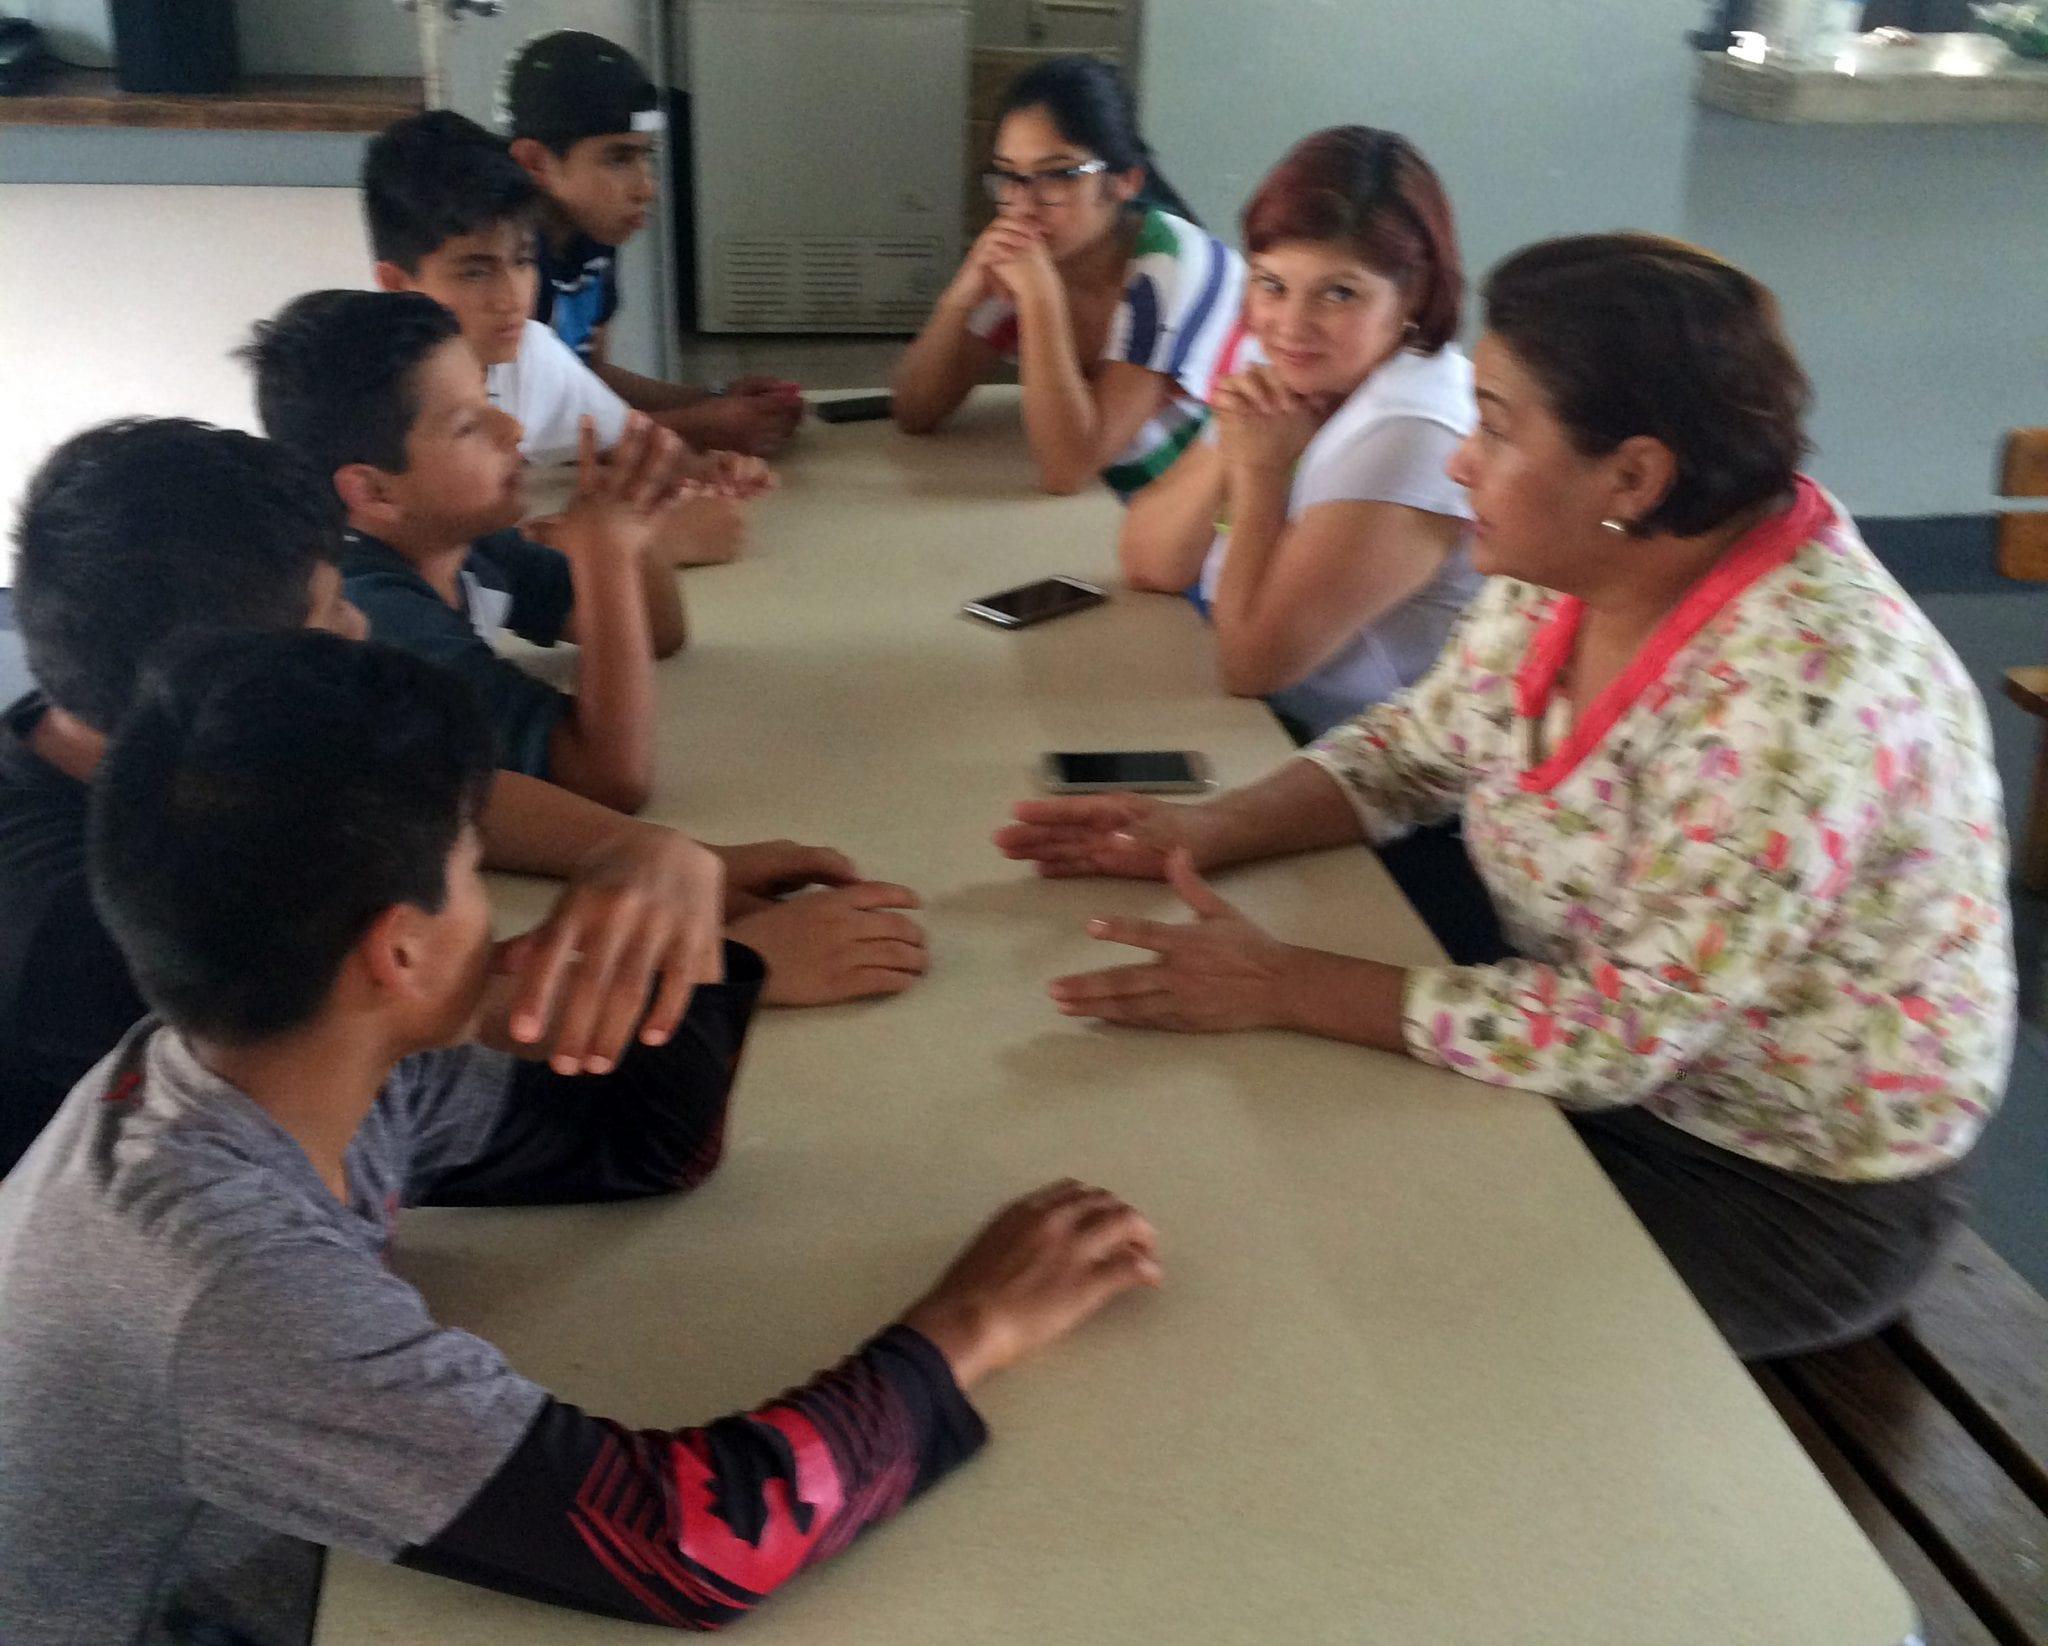 Volunteers from Casa de Libertad helping with cooking classes at the orphanage Fundaninos